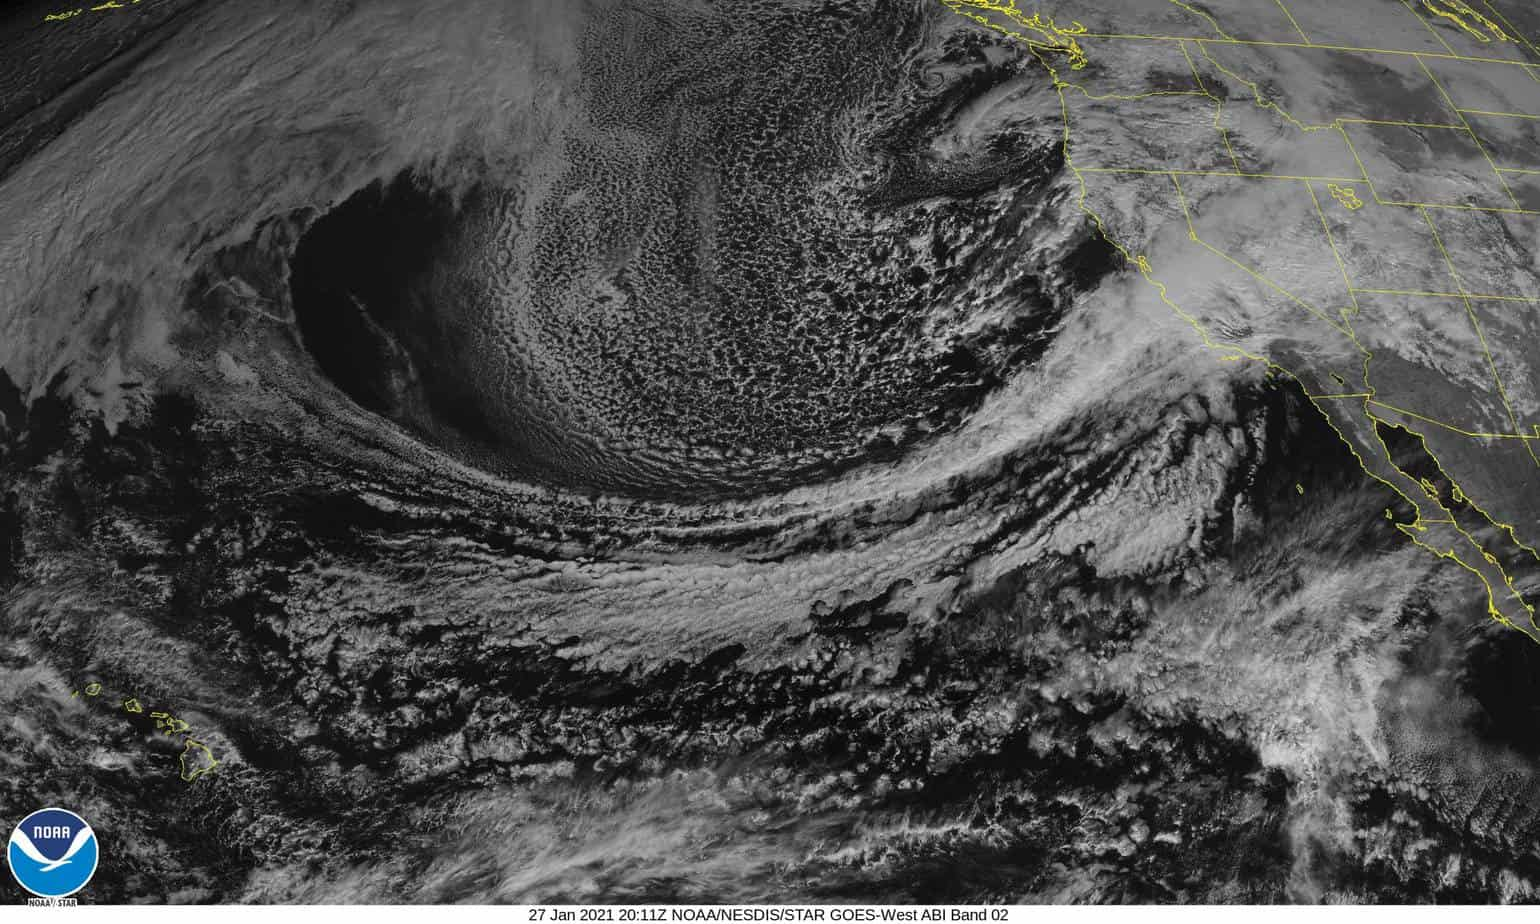 NOAA Satellite image of the Extra-tropical cyclone over the Pacific Ocean that became Winter Storm Orlena